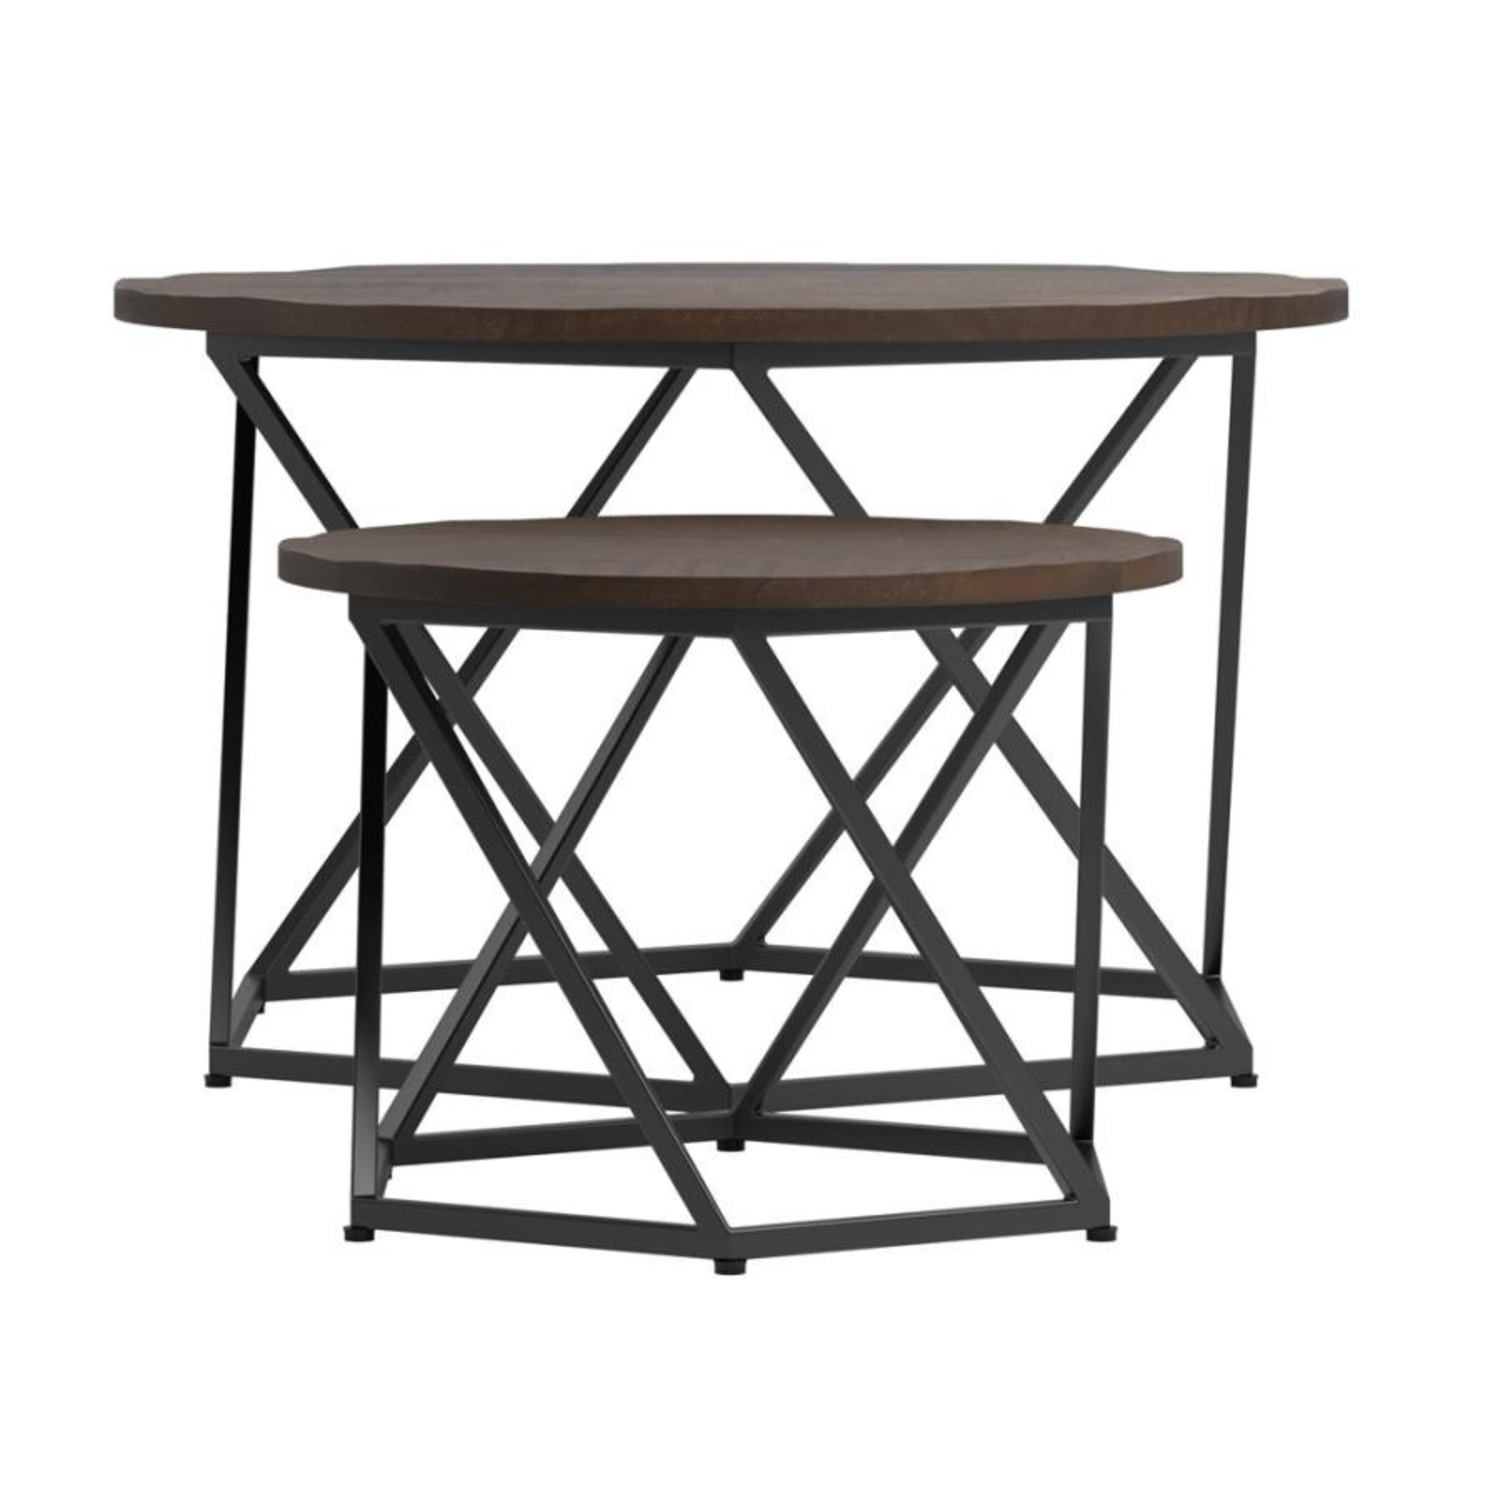 Nesting Table In Natural & Matte Black Finish - image-1